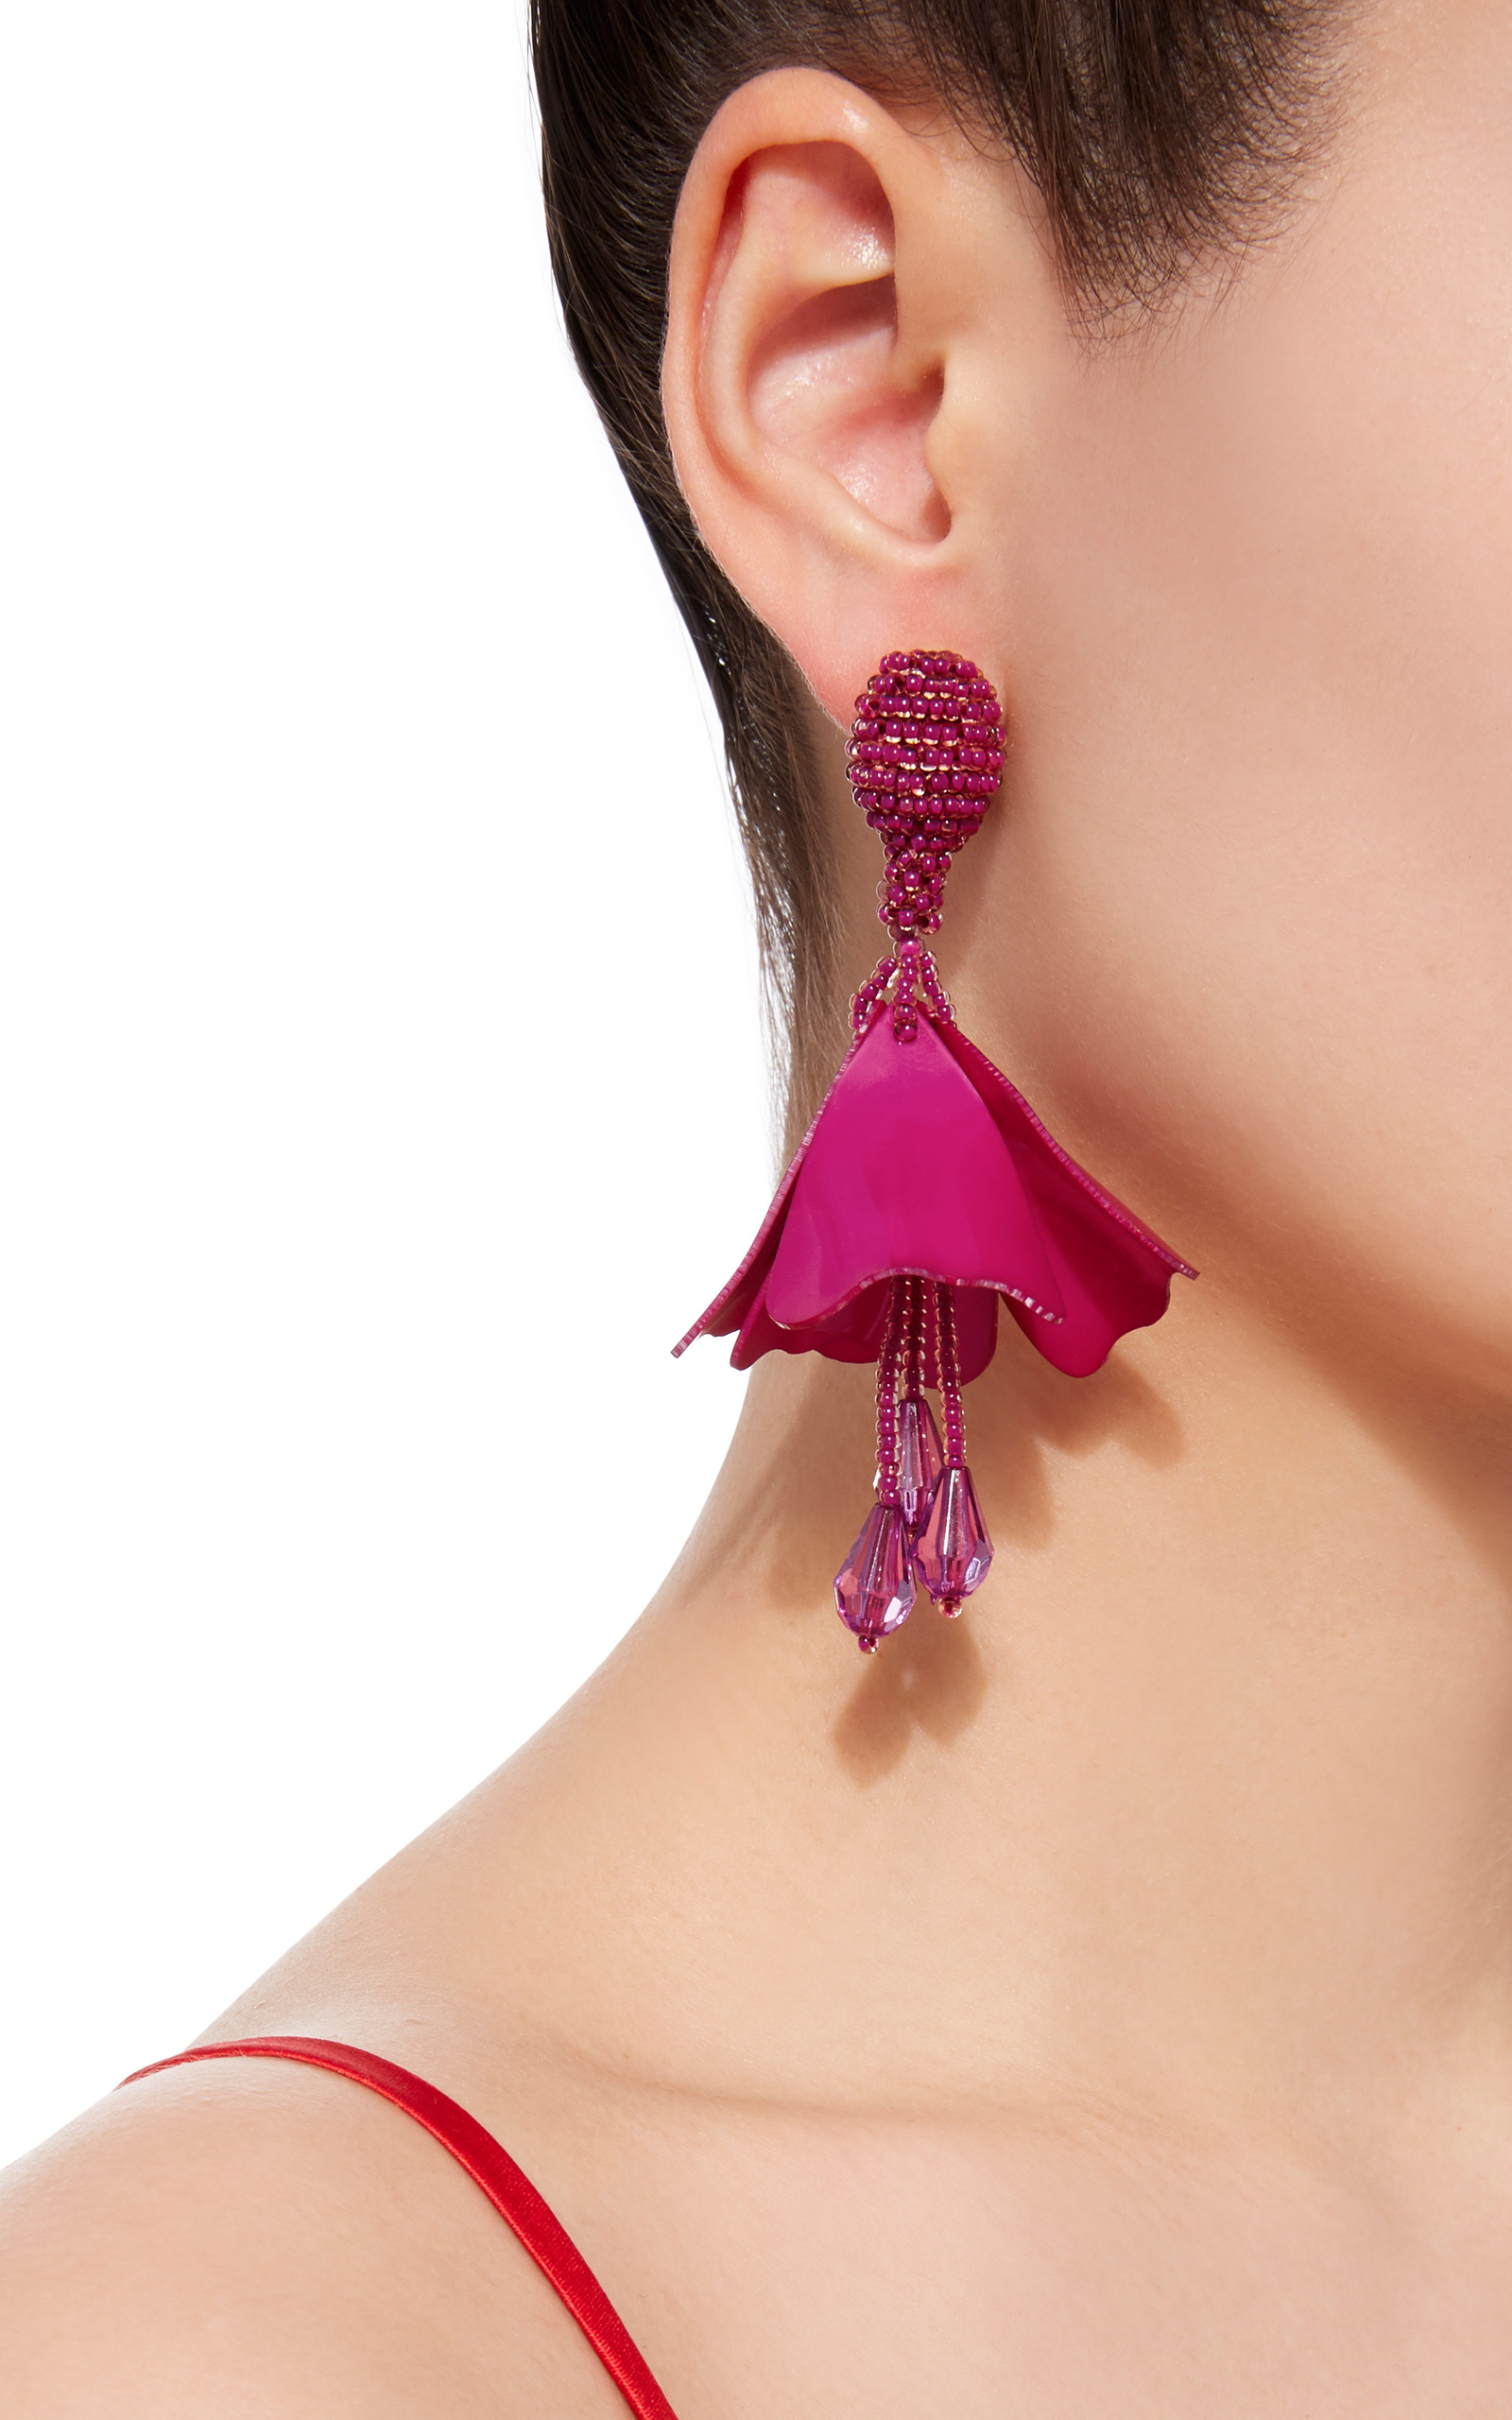 back earring and pin feminine large earrings flower